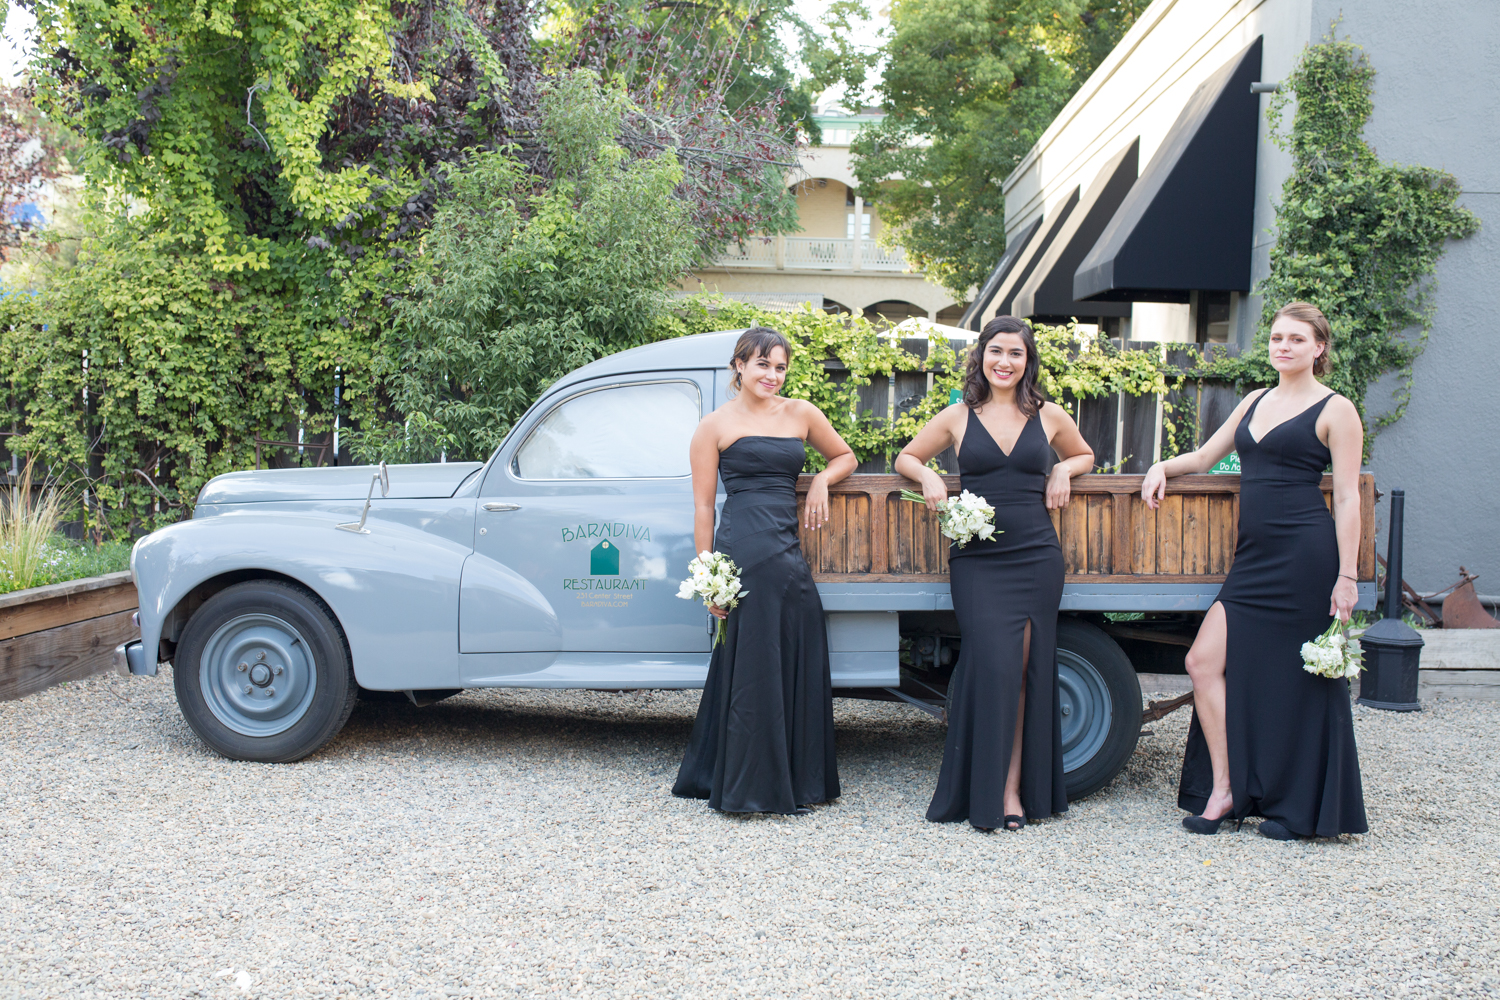 napaweddingphotography_sfweddingphotographer_bridesmaids_barndiva-napaweddingvenue.jpg